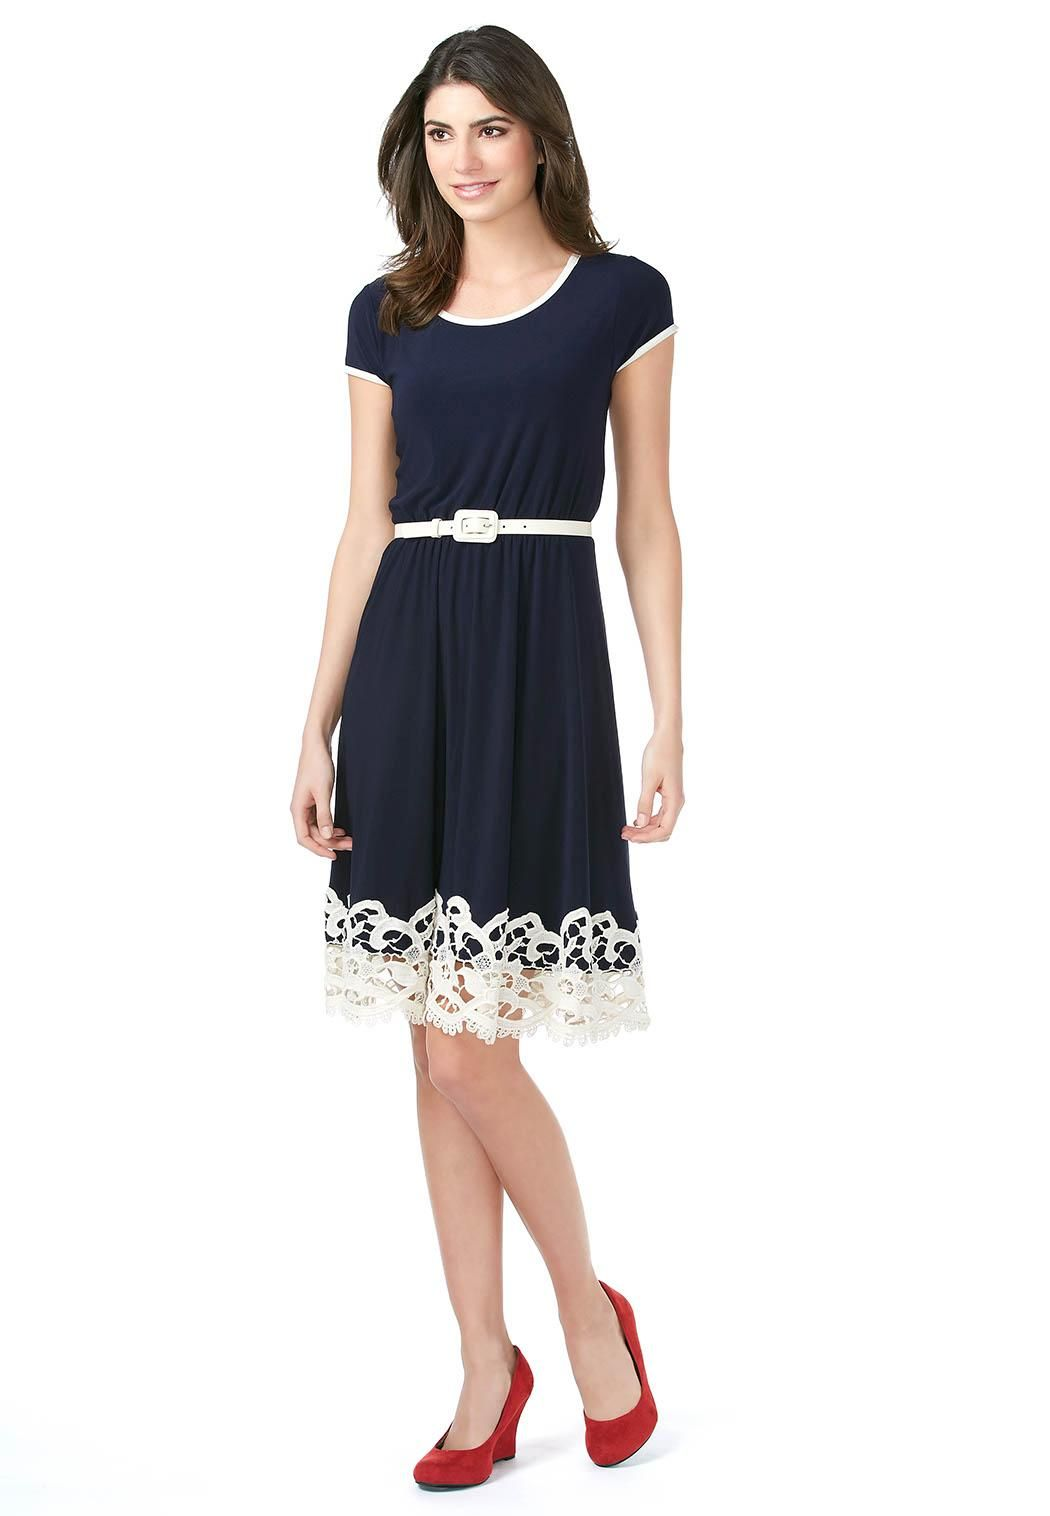 Cato fashions careers - Cap Sleeve Lace Trim Belted Dress Dresses Cato Fashions